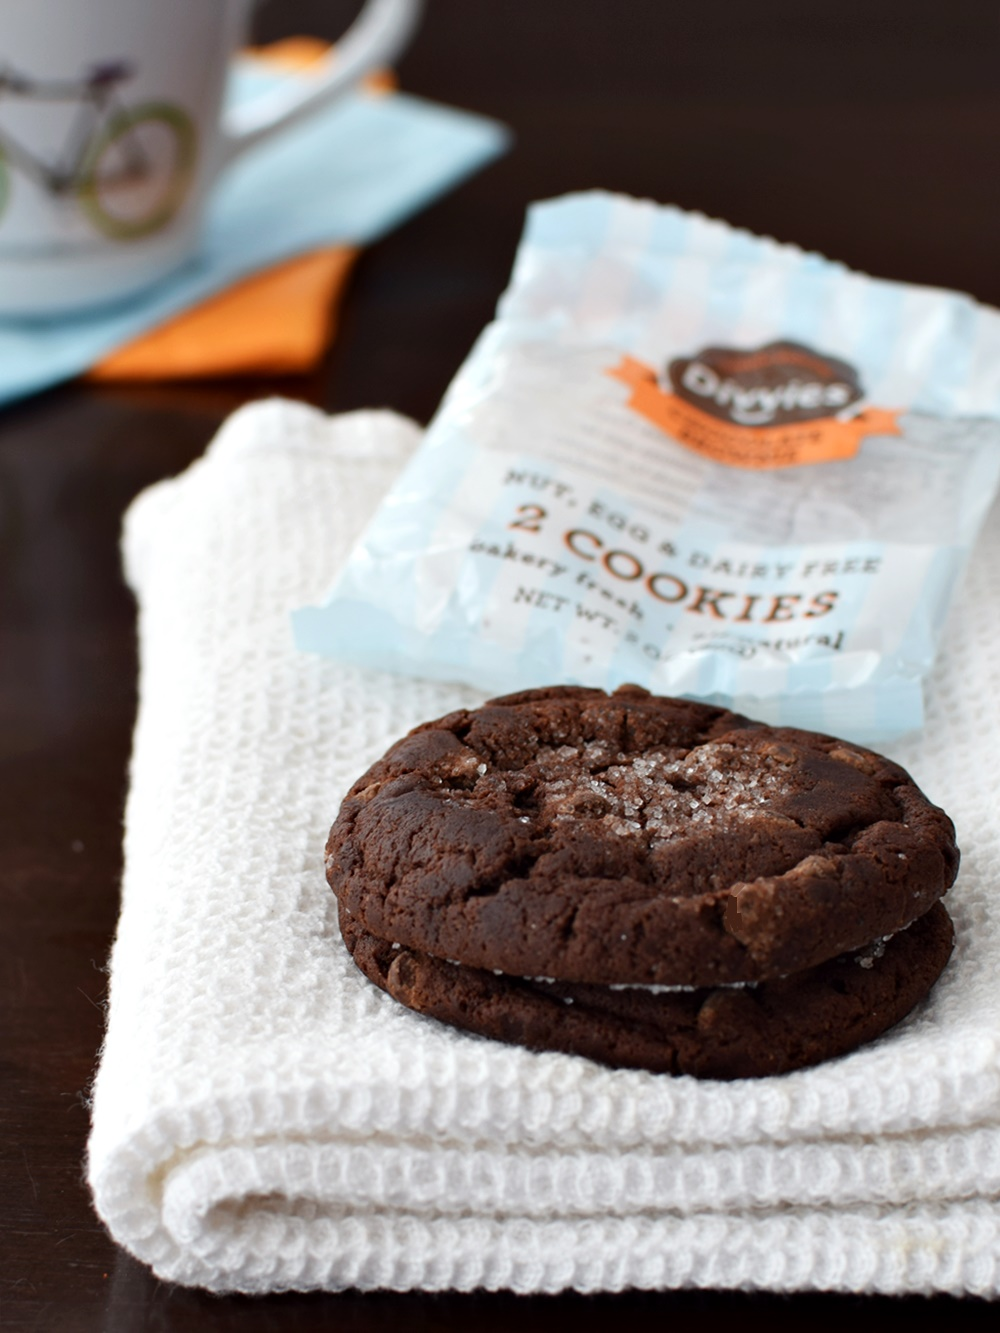 Divvies Bakery Cookies: 2 Amazingly Soft, Chewy Cookies per package - Nut, Egg and Dairy Free + Vegan